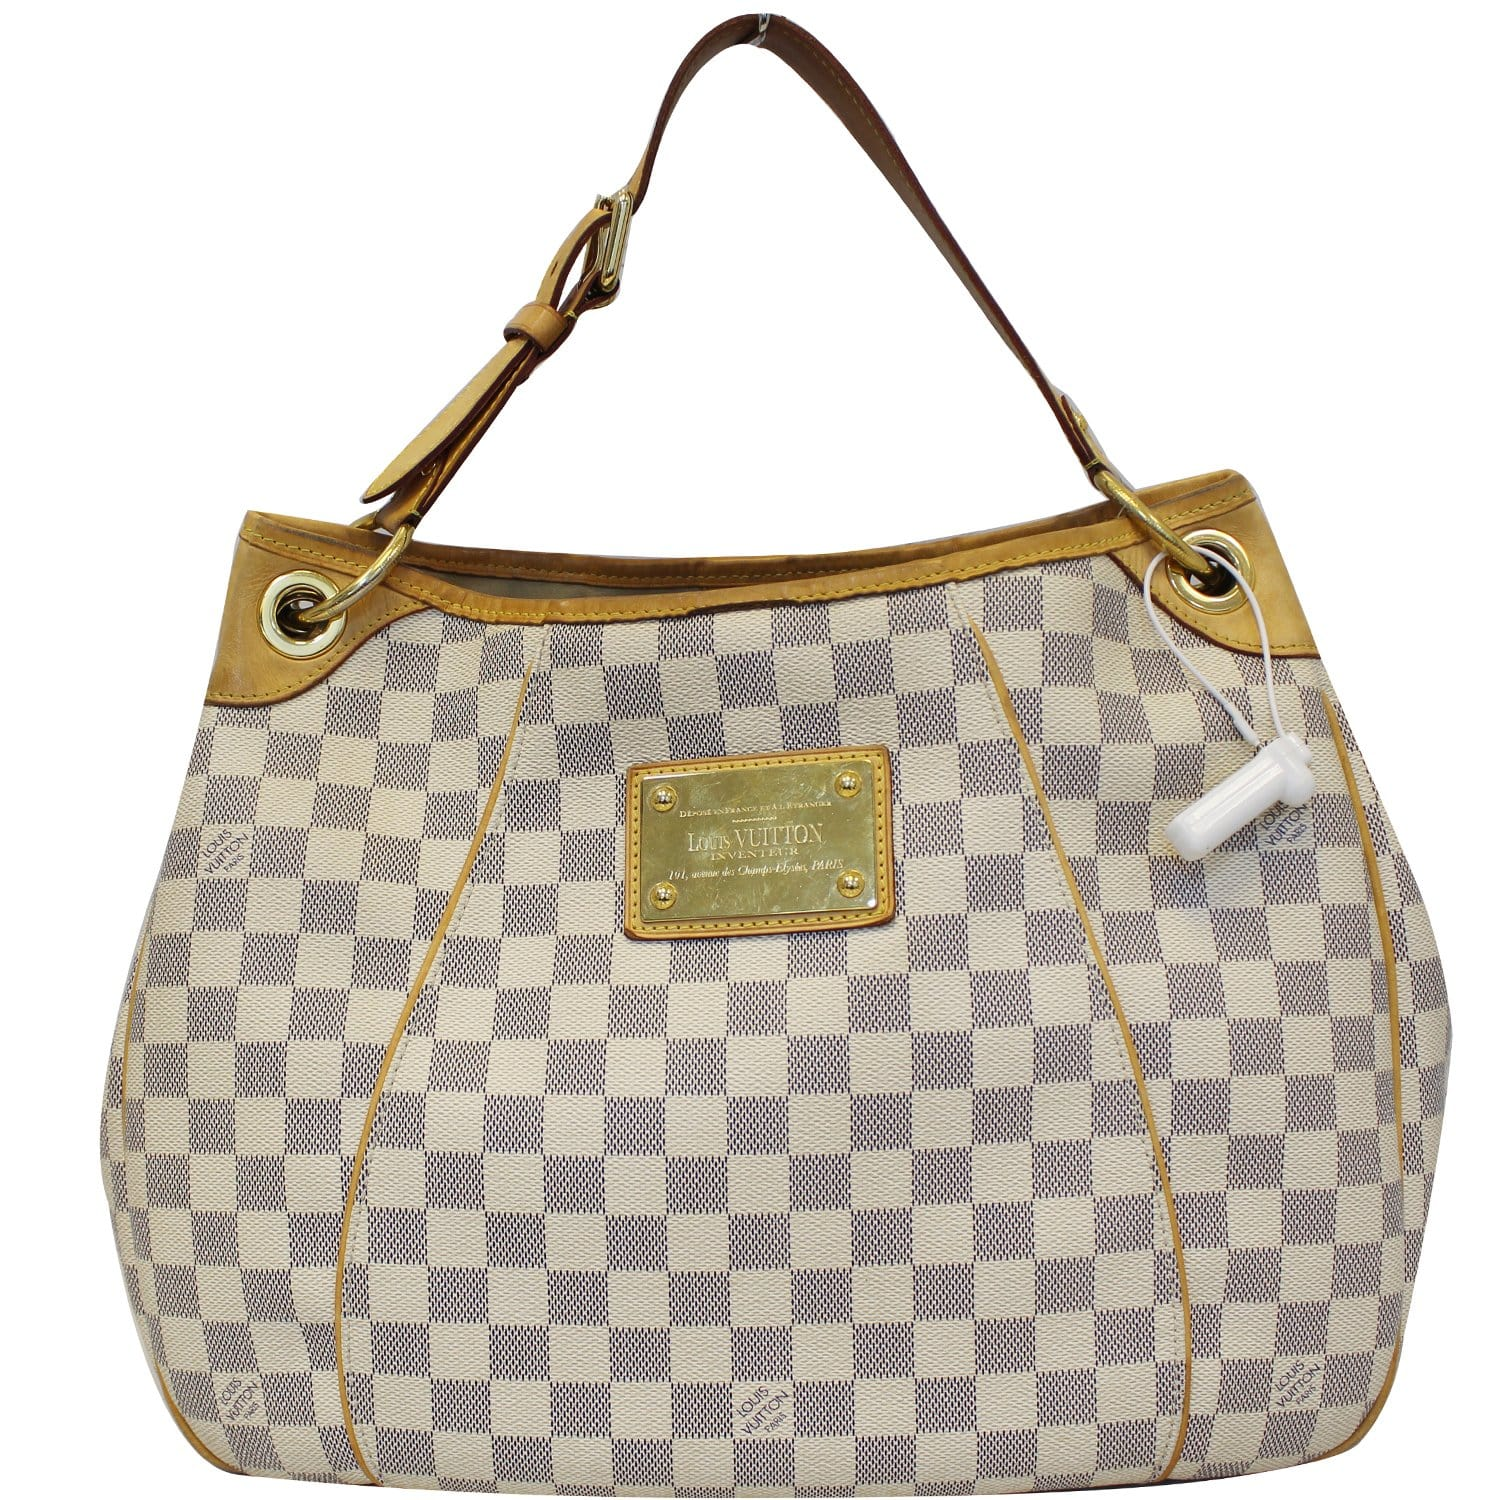 9090297ad76e6 LOUIS VUITTON Galliera PM Damier Azur Shoulder Bag-US